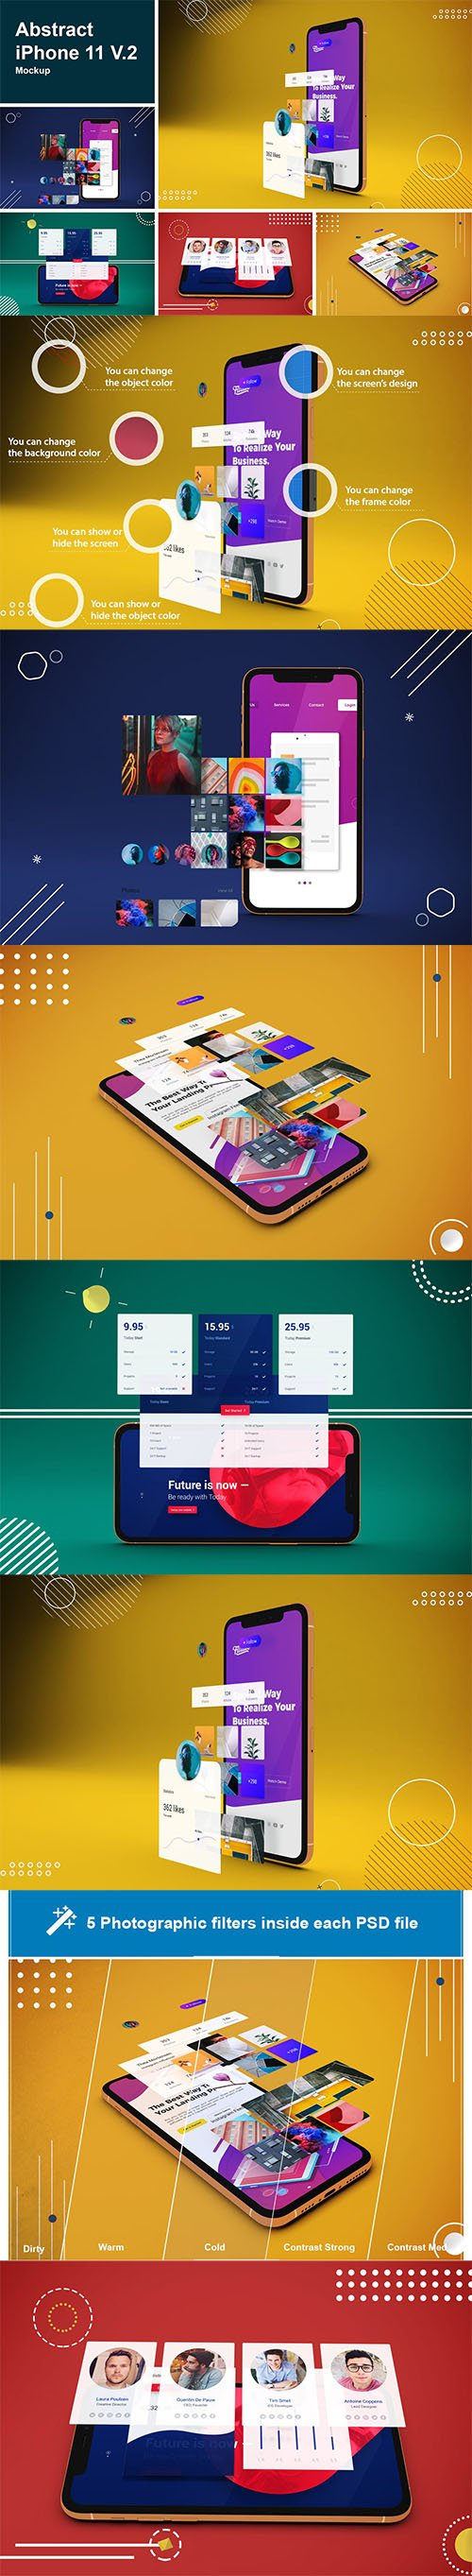 Abstract iPhone 11 Mockup V.2